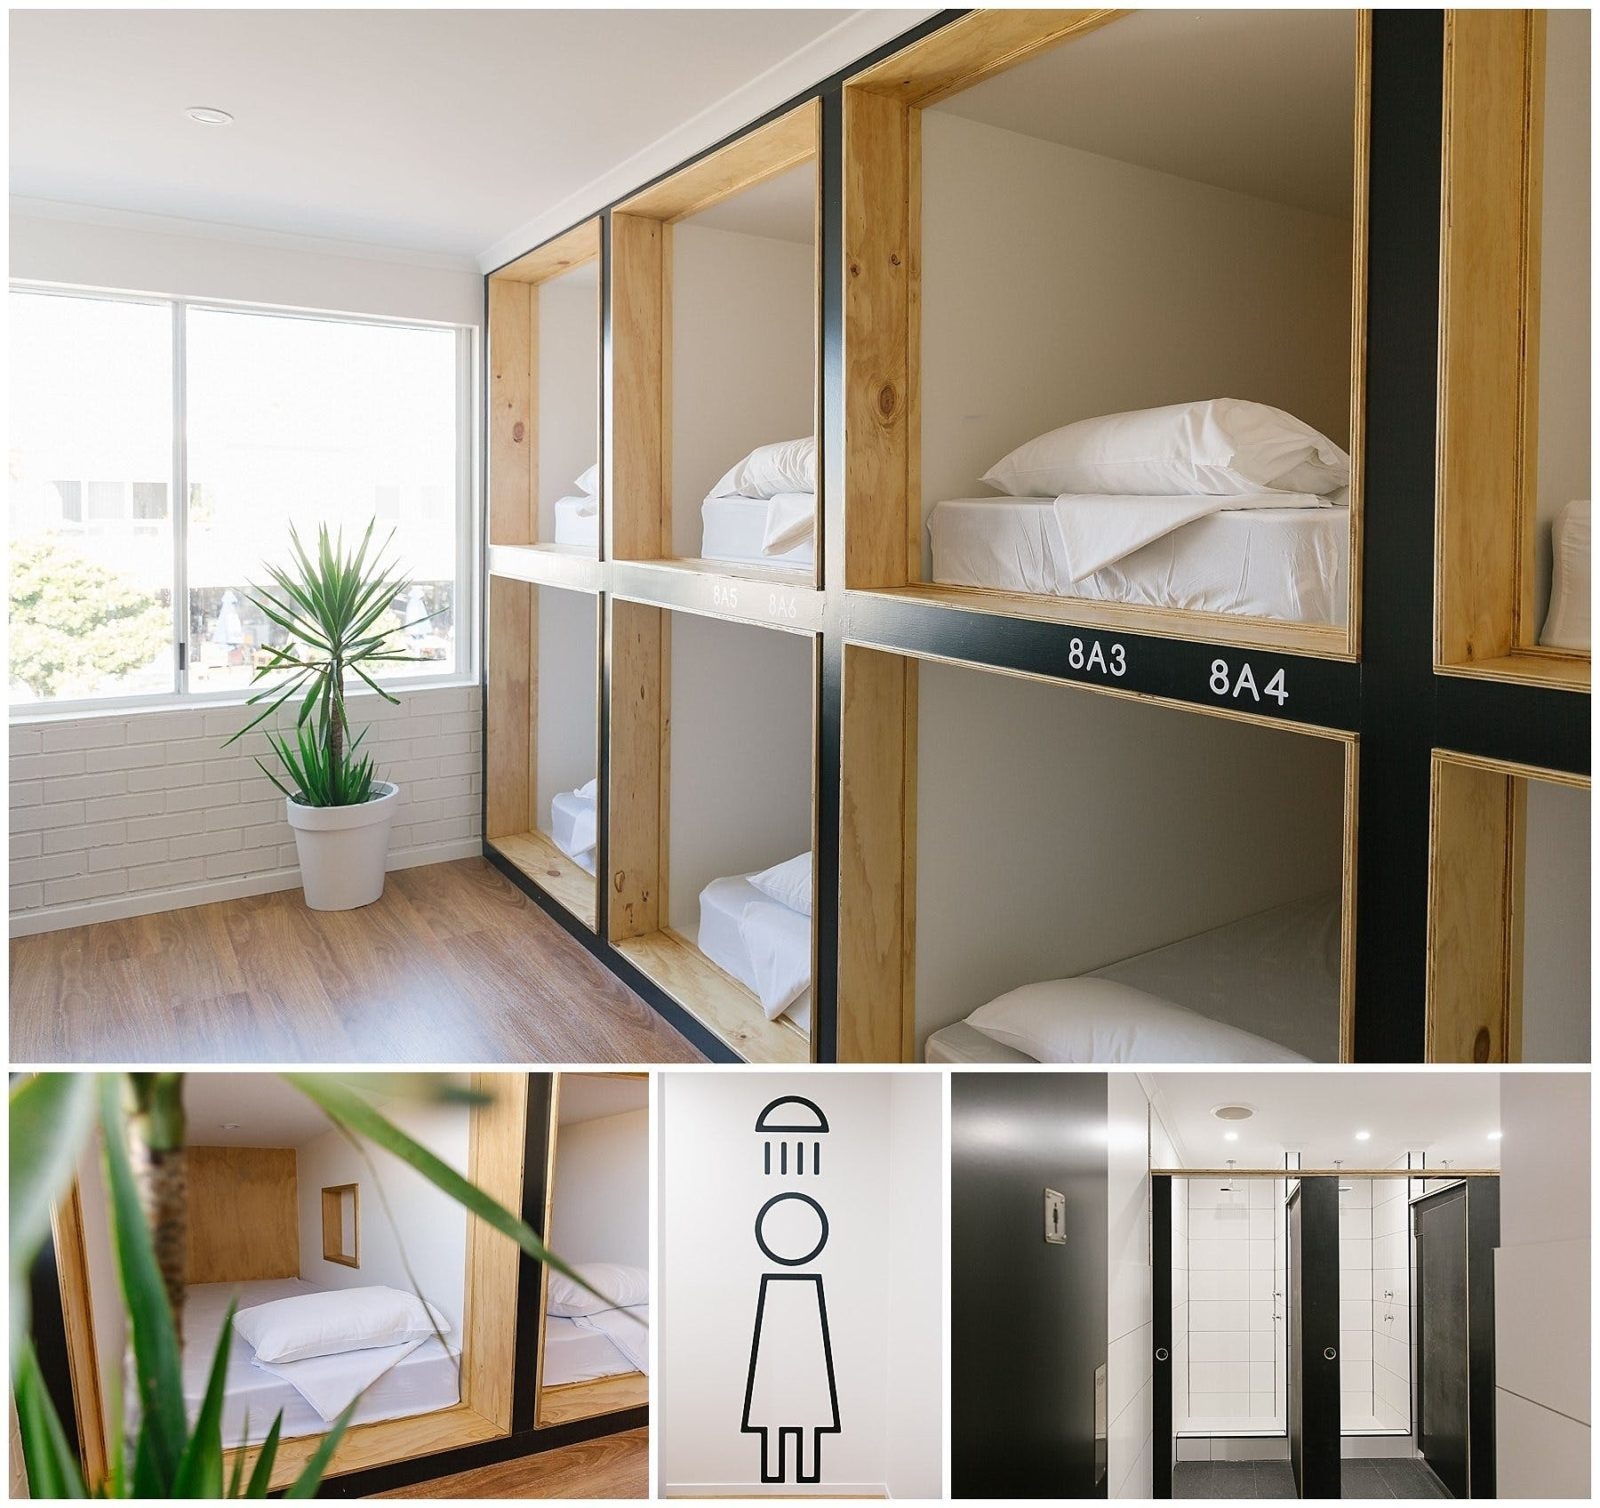 Modern, clean and secure dorm share and private rooms available to suit any budget.